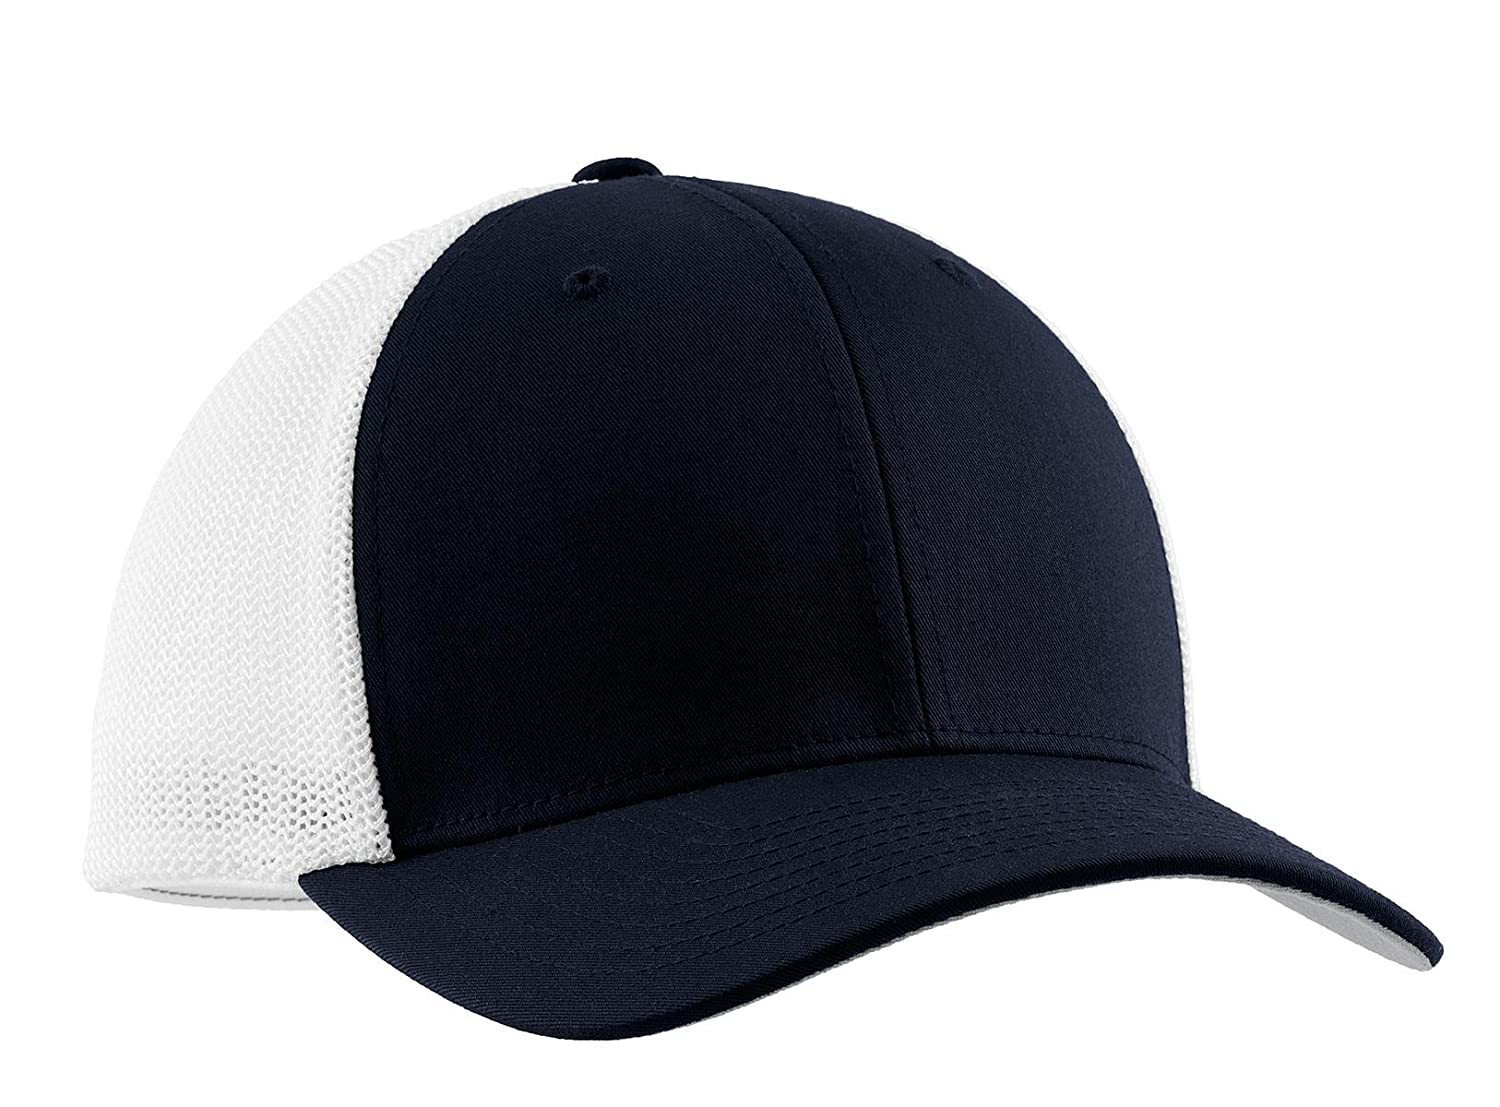 cc97b326579 Port Authority Men s Fitted Stretch Fit Stretch Fit Fitted Baseball Cap at  Amazon Men s Clothing store